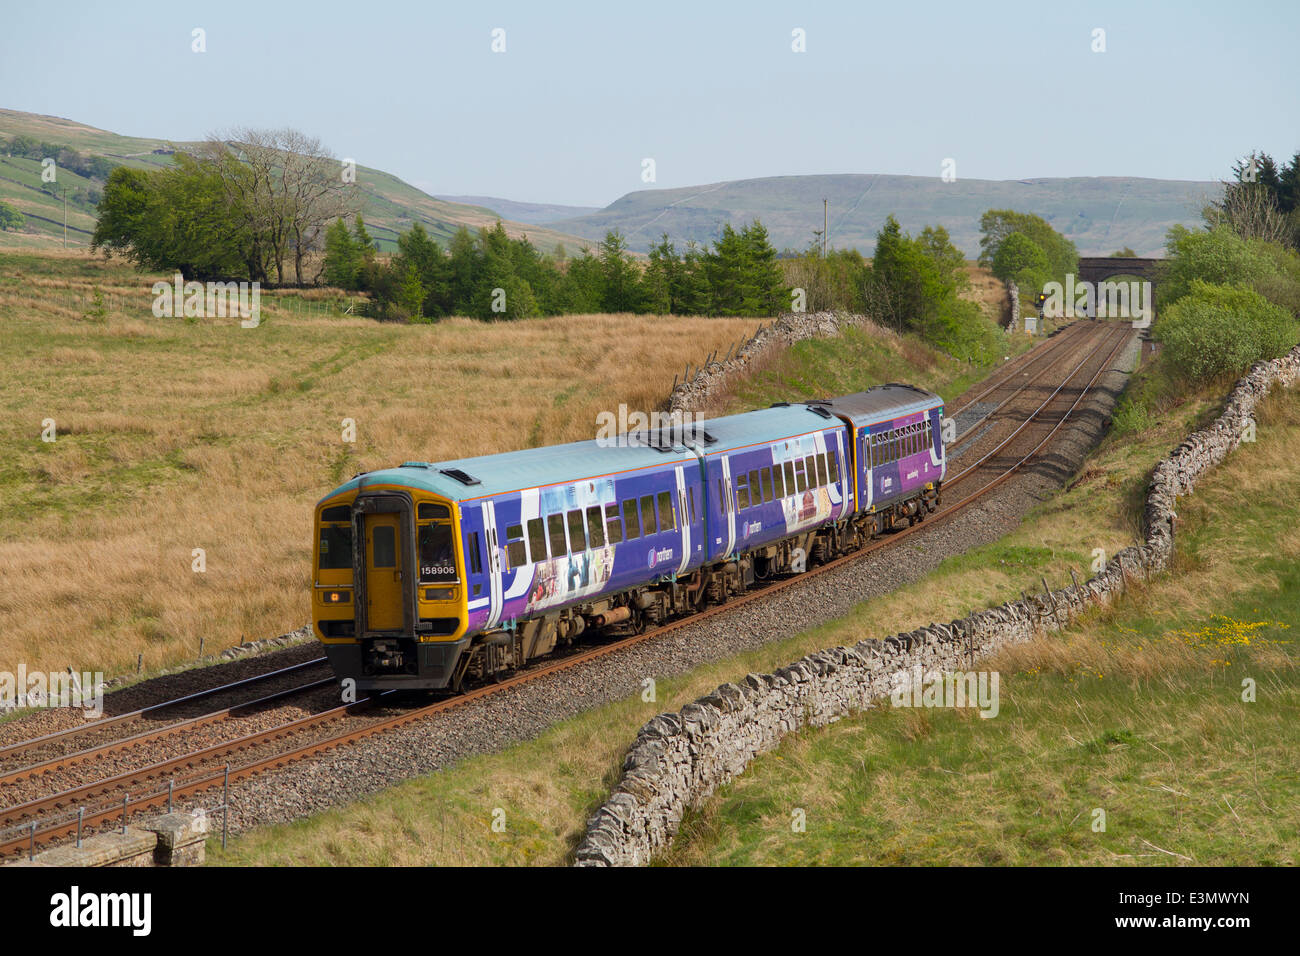 158906 and 153301 DMUs working a Northern rail service at Ais Gill. 17th May 2014. - Stock Image